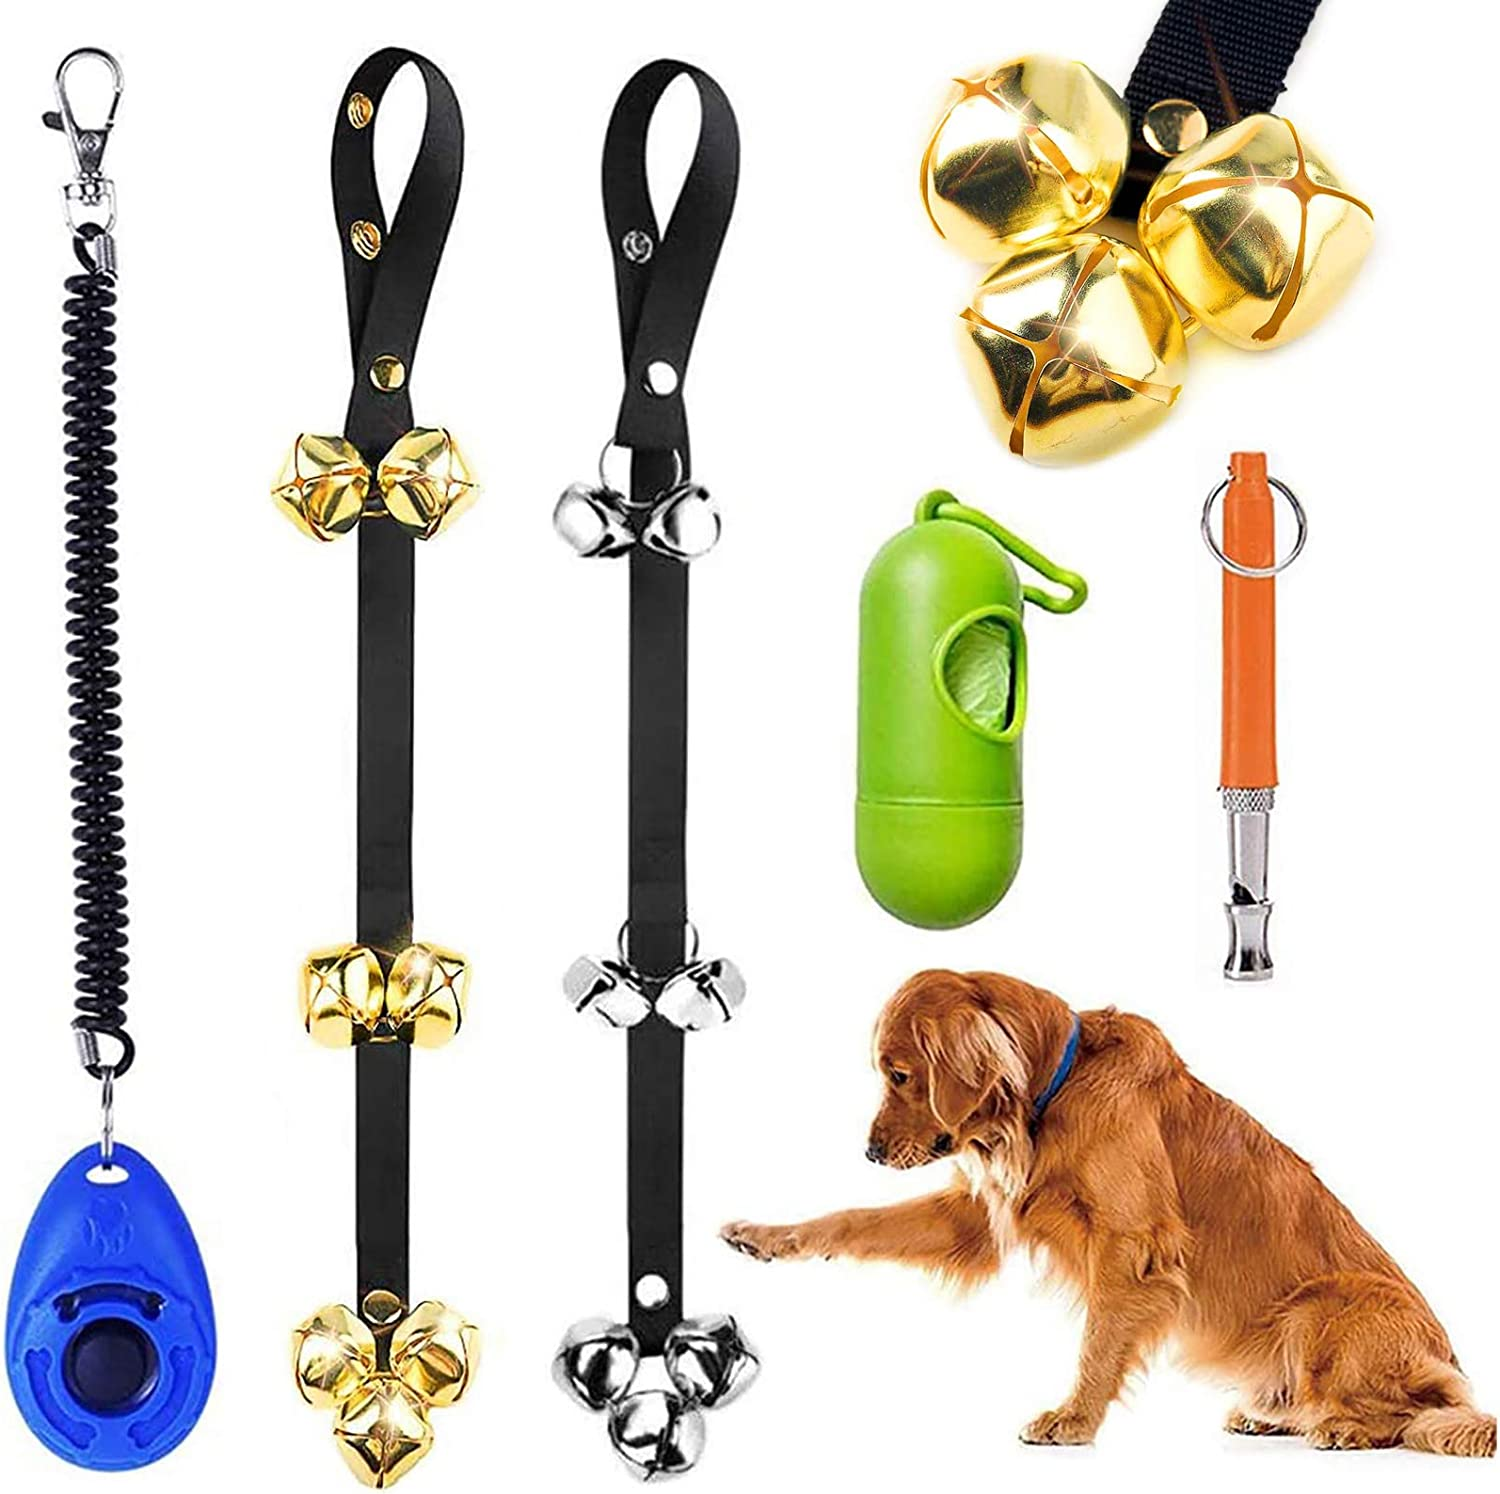 Orangelight 2 Pack Dog Doorbell Training Adjustable Premium Quality Door Bell for Puppy Ring to go Outside Potty Bells Premium Quality Nylon Dog Loud Bells